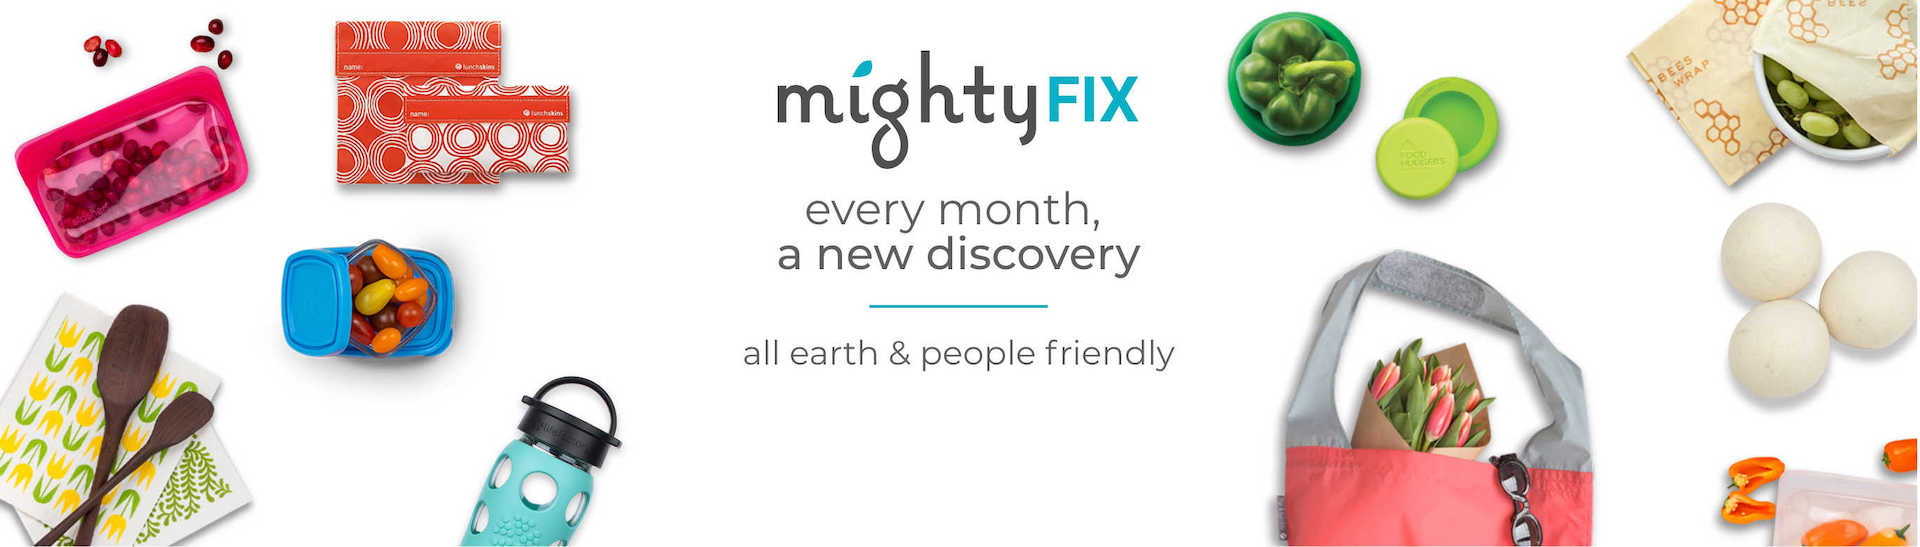 Mighty fix home products full b